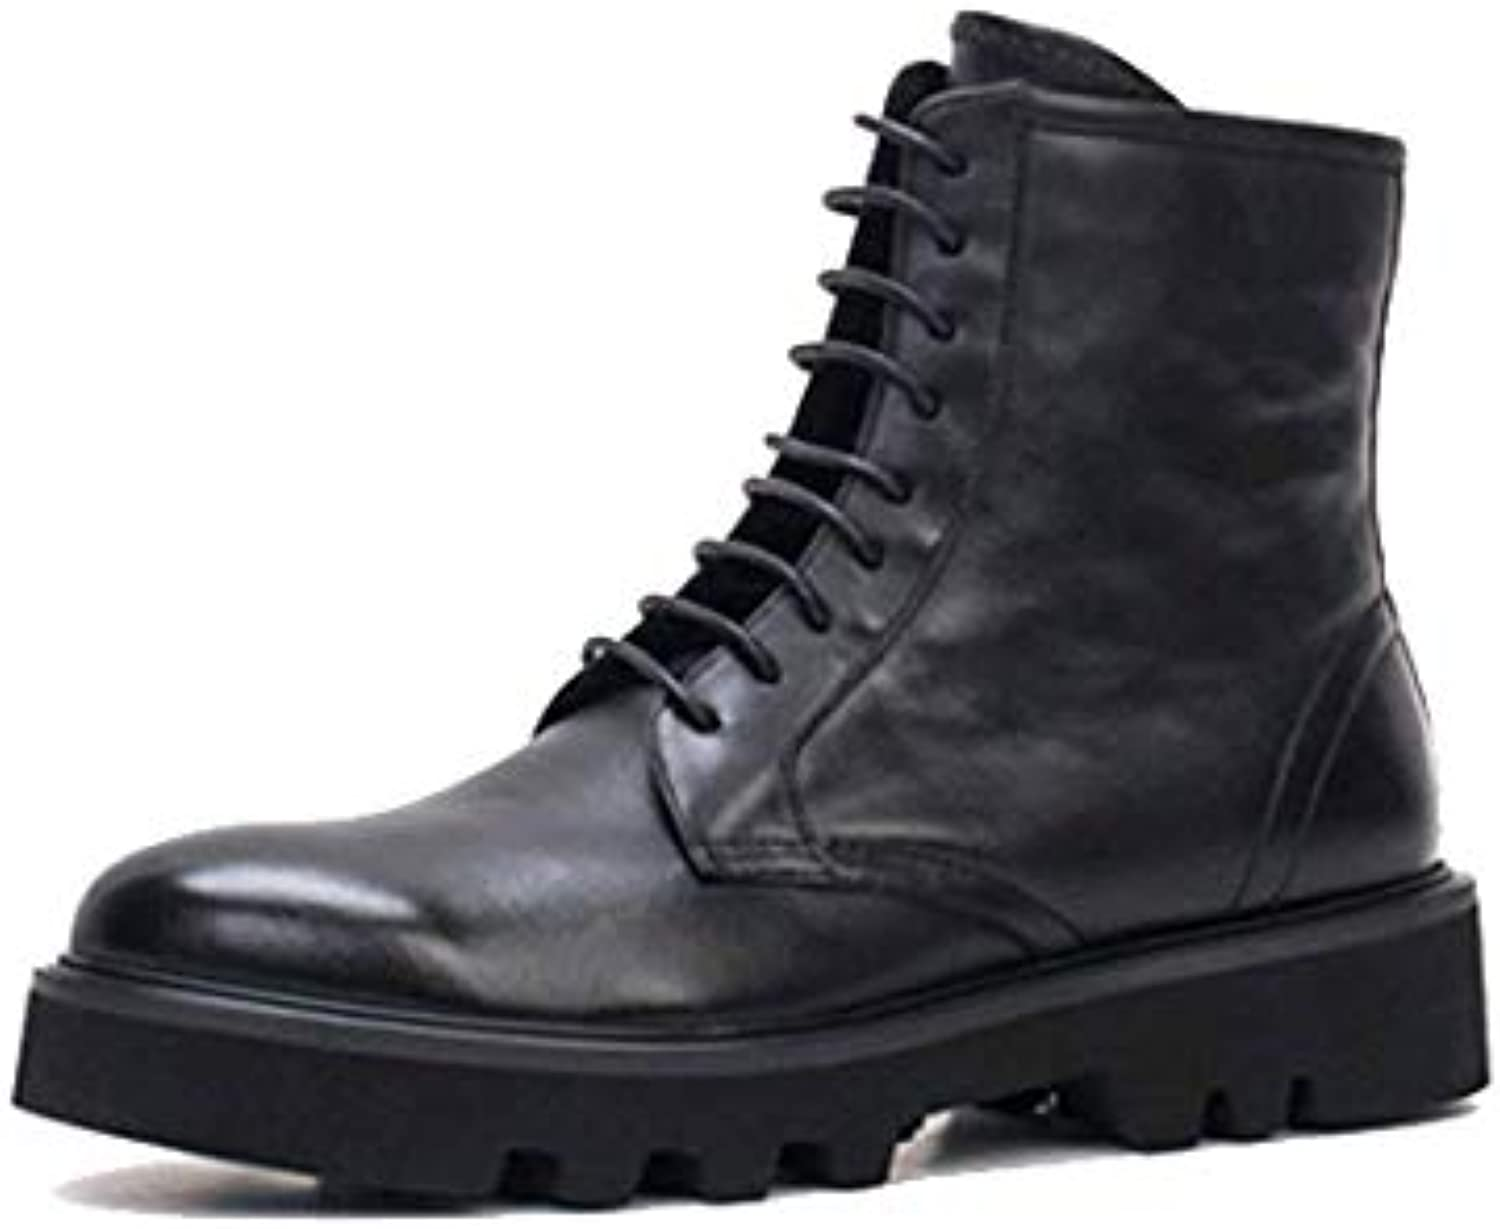 Martin Boots Cuir Cuir Angleterre Haut-Top Bottes Hommes Haut-Top Angleterre 39b546